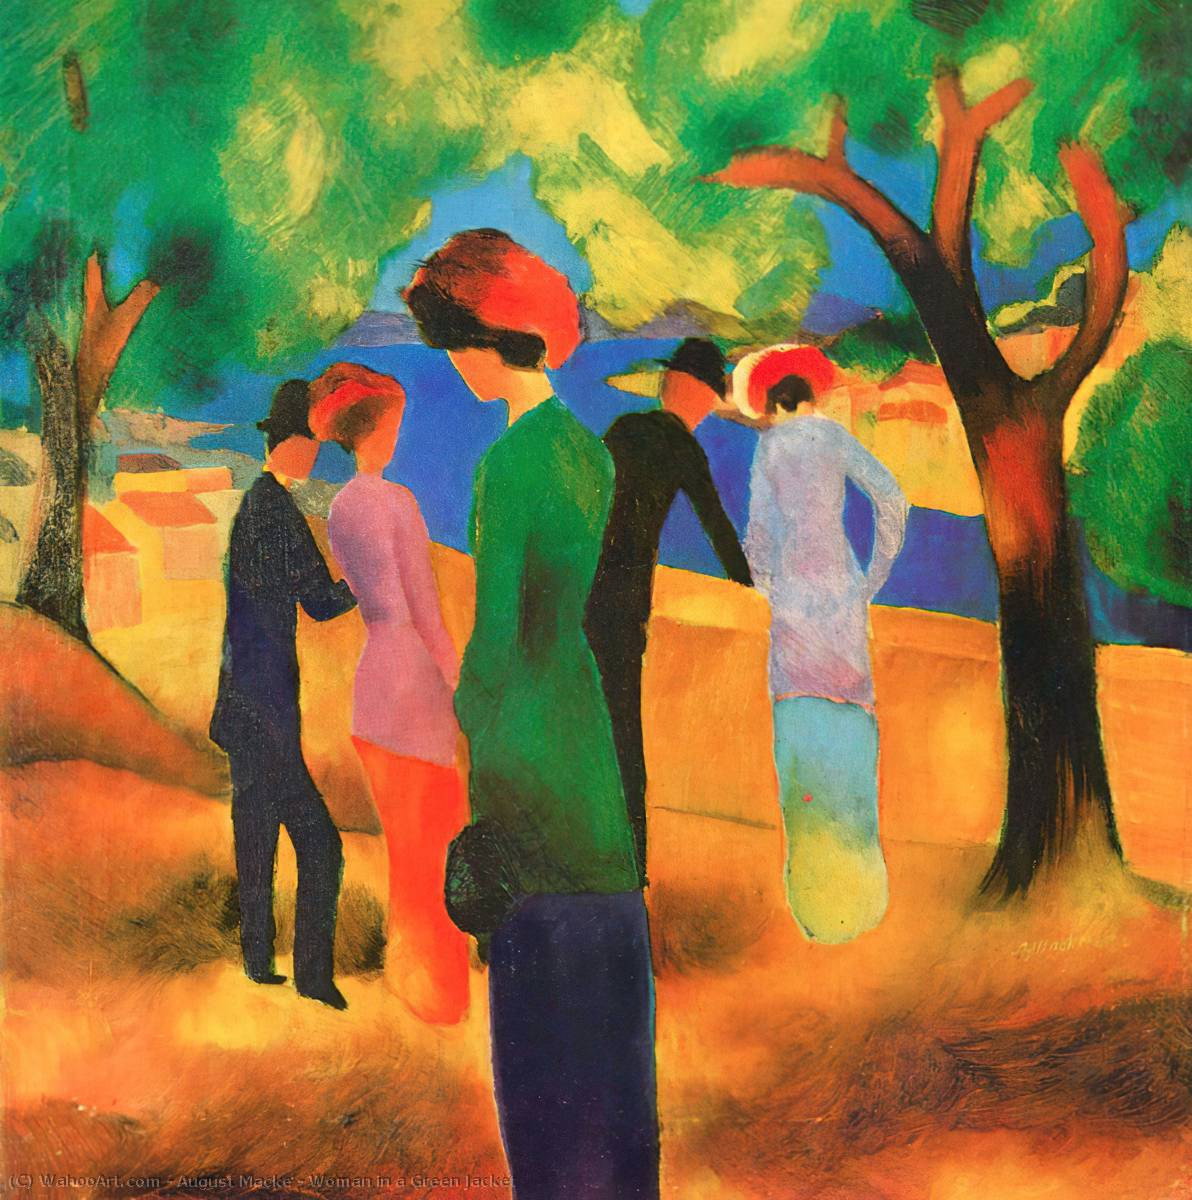 Order Reproductions | Woman in a Green Jacket by August Macke | AllPaintingsStore.com